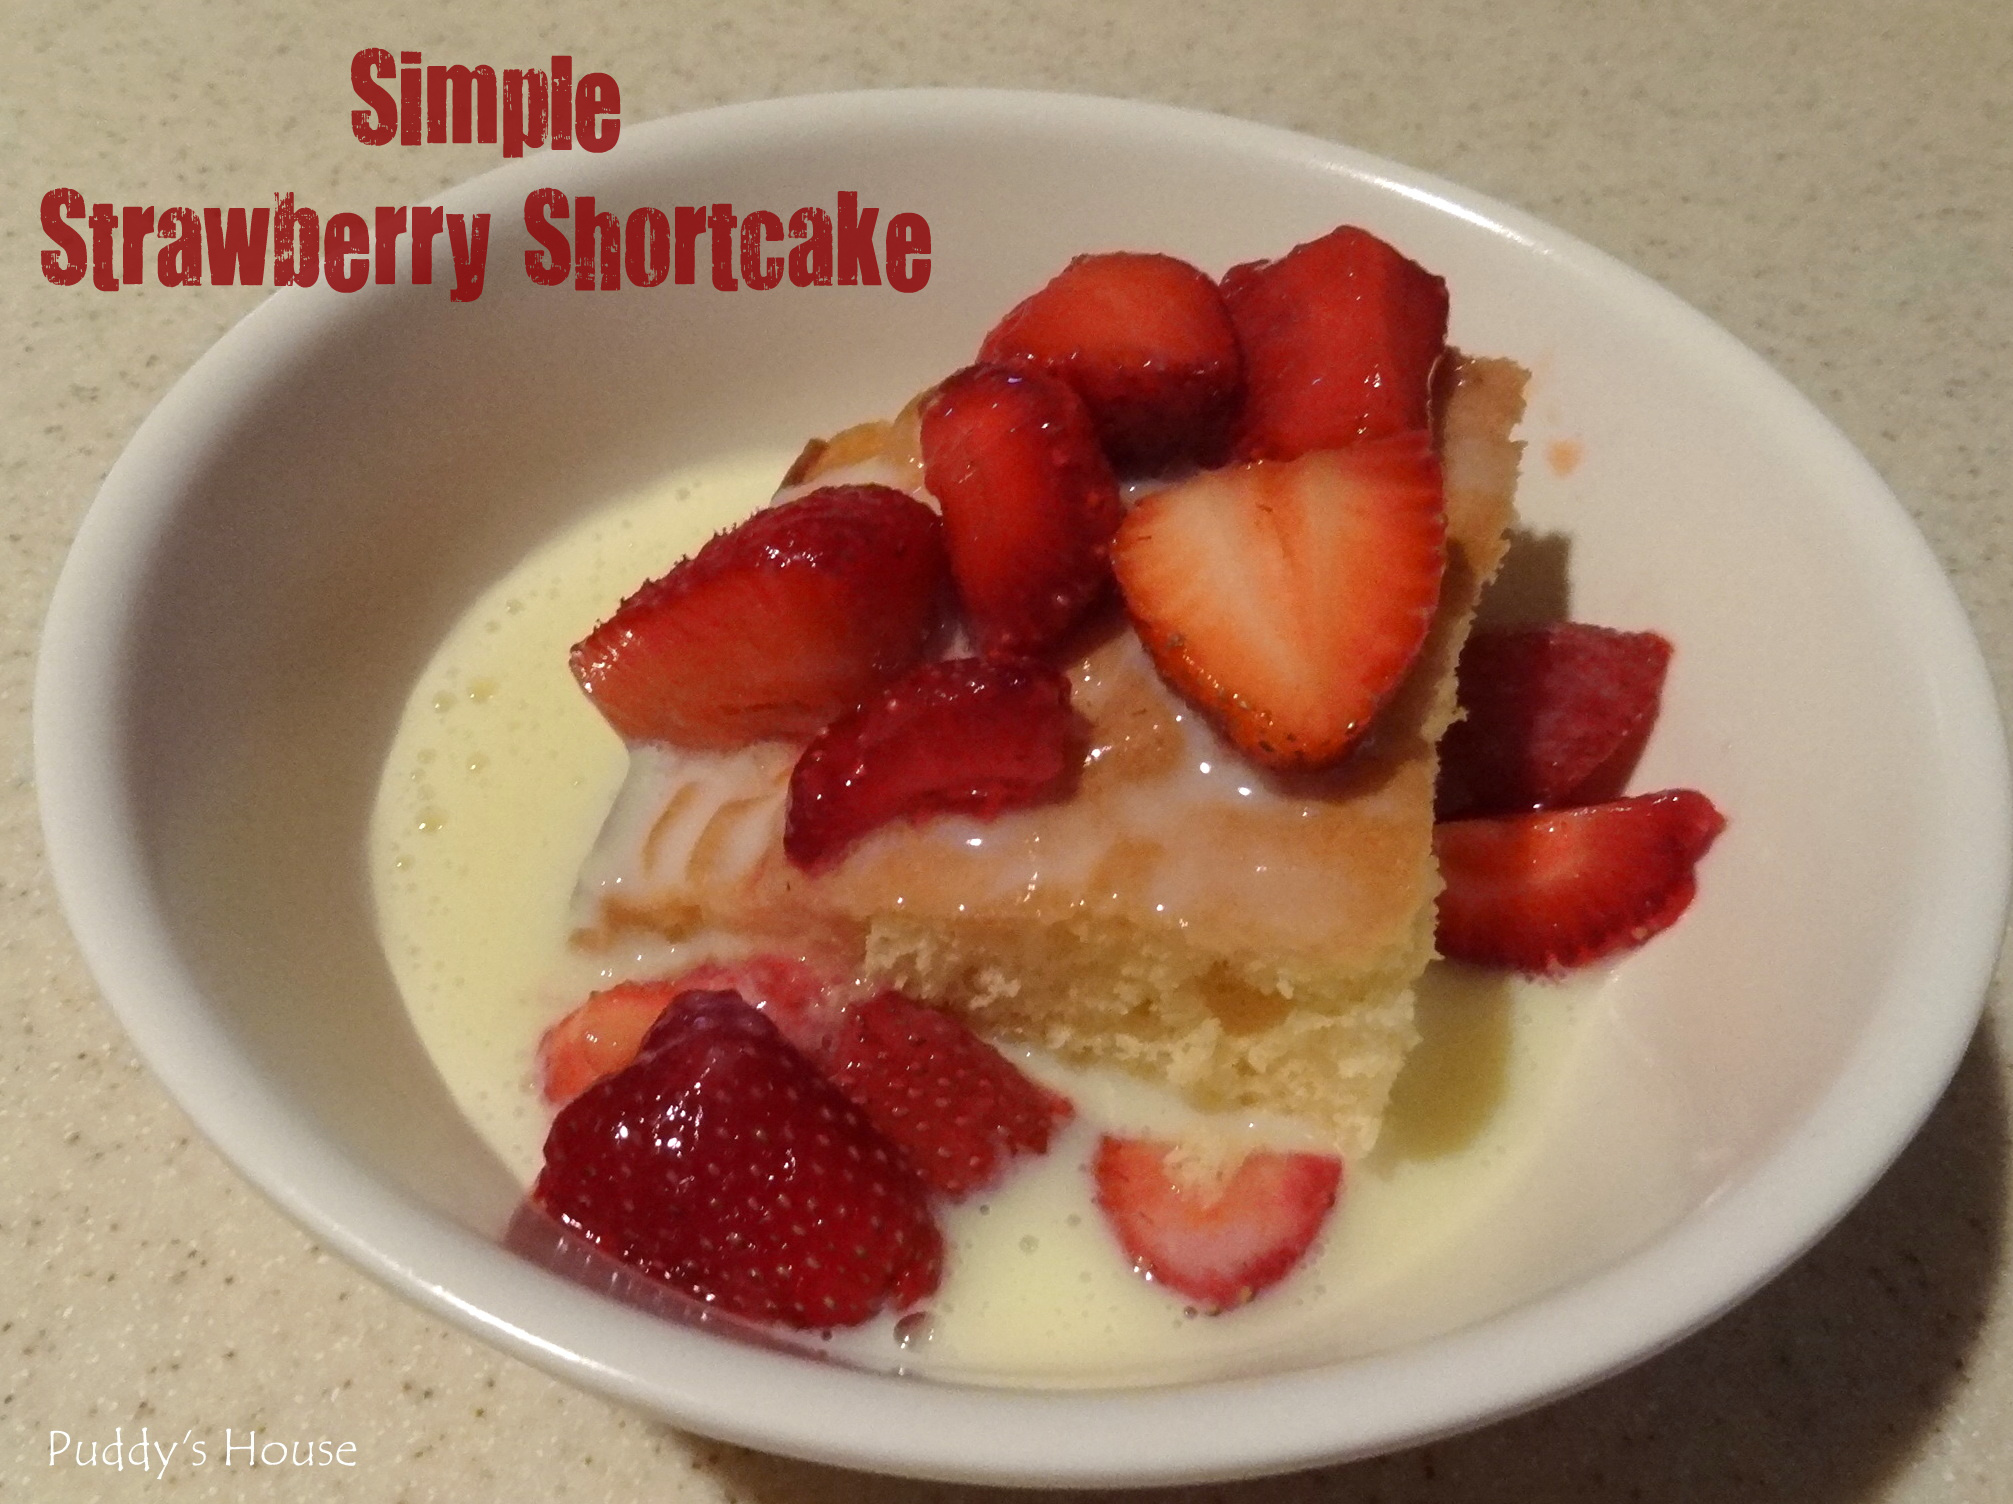 Simple Strawberry Shortcake – Puddy's House